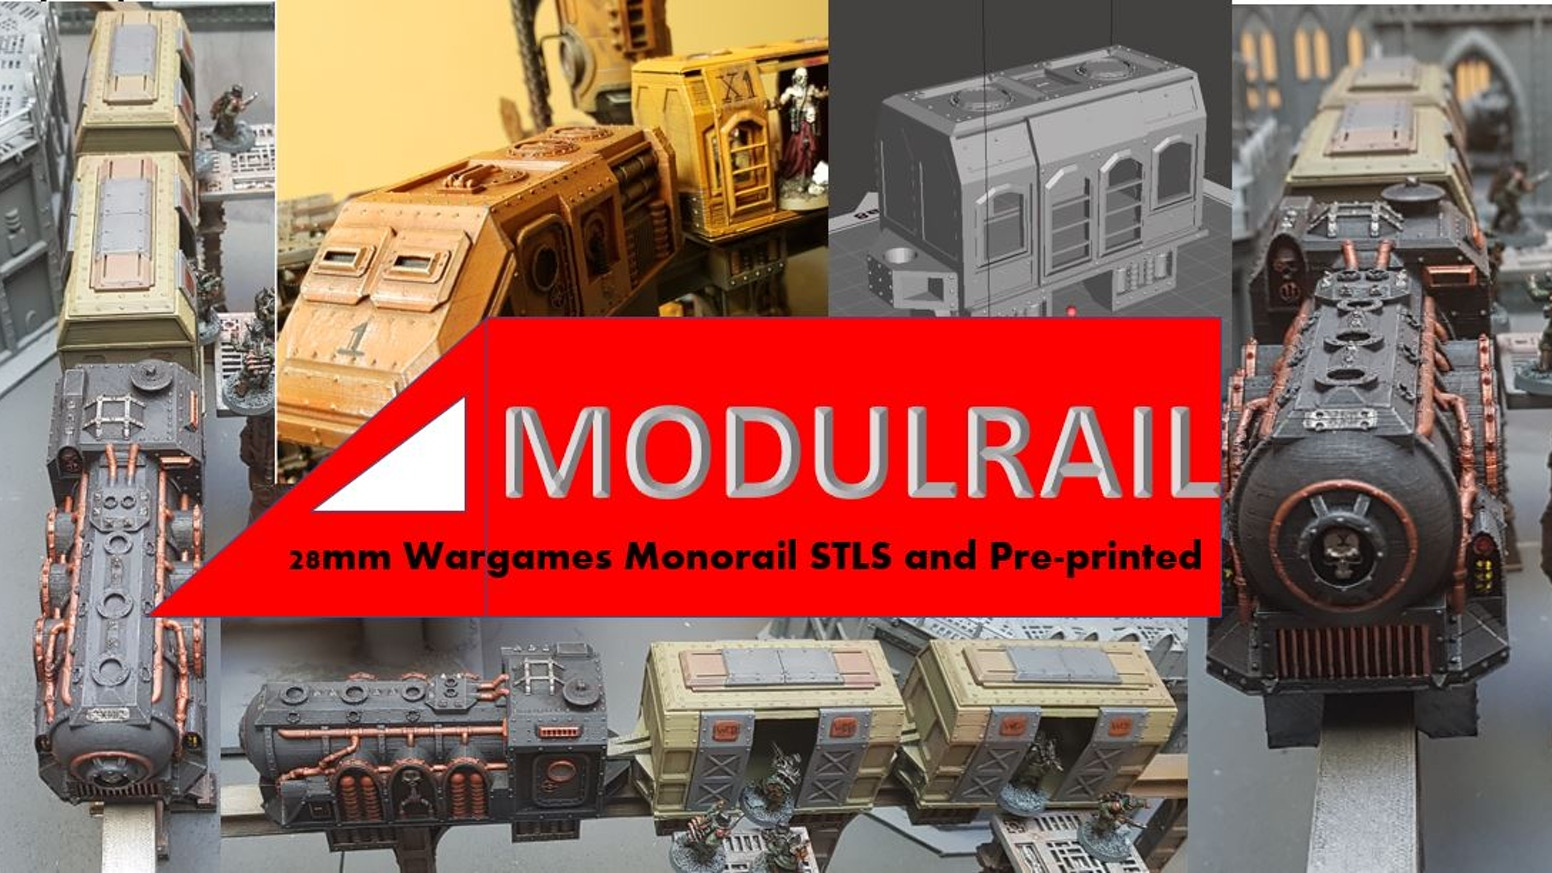 STL files for 3d Printable Monorail for 28mm Wargaming